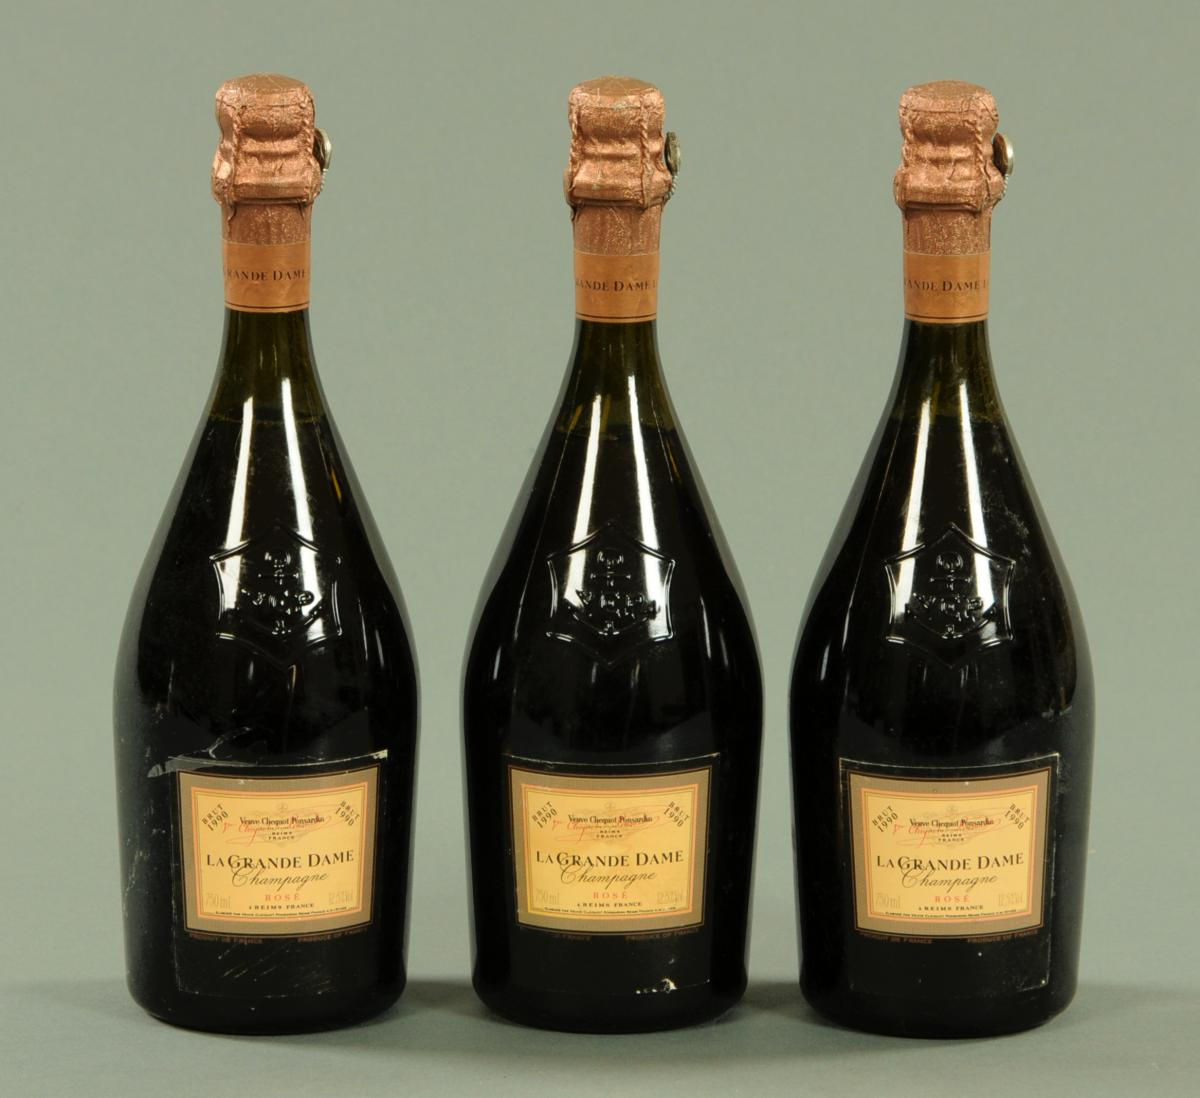 Champagne among lots up for sale in latest Mitchells auction